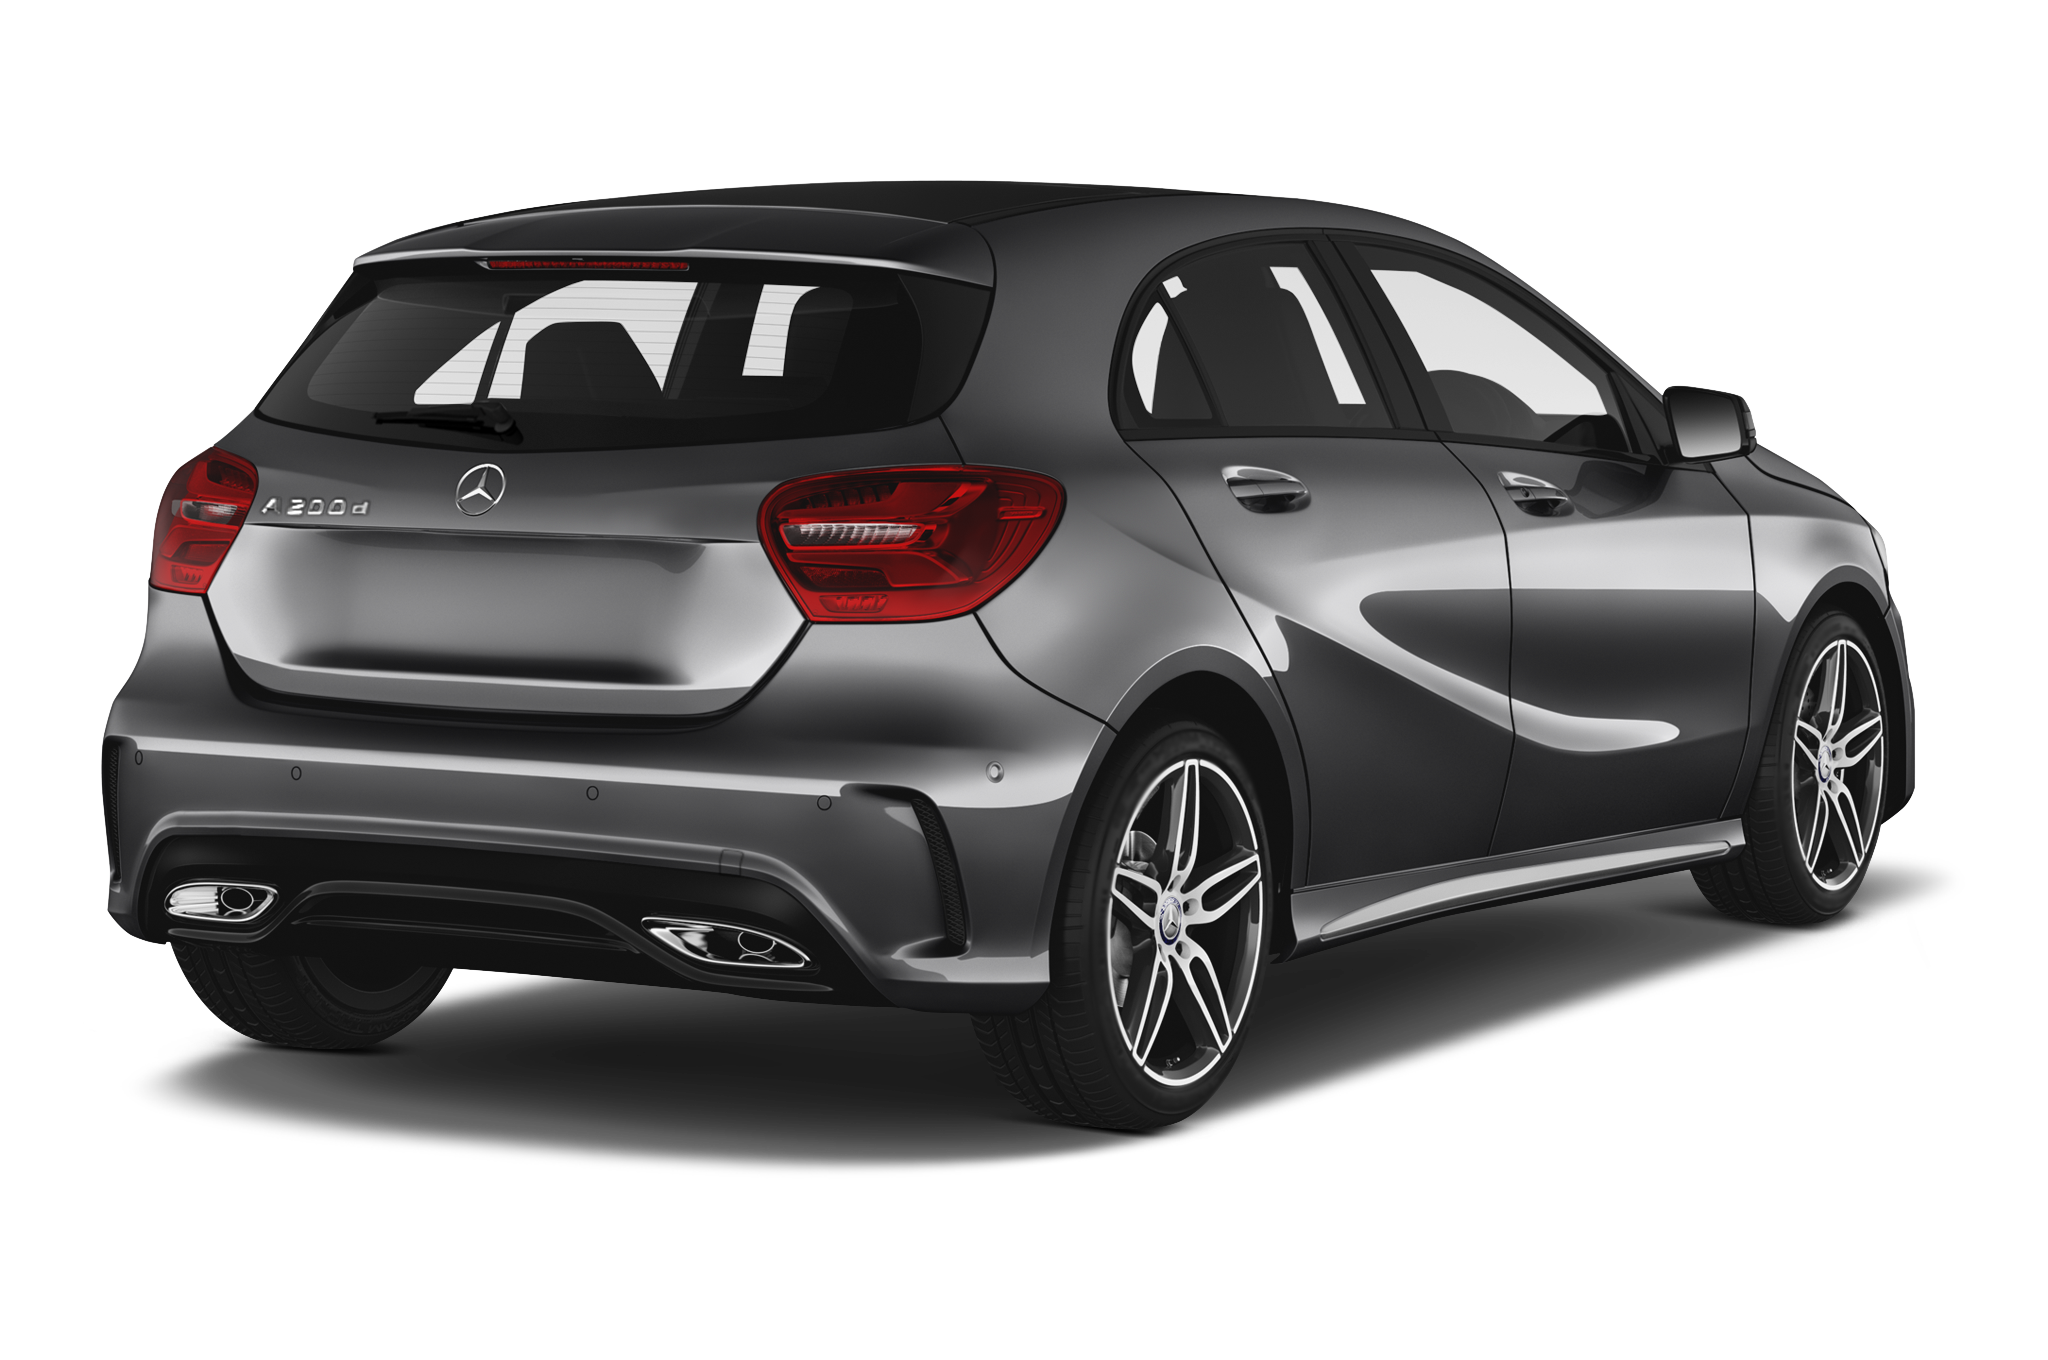 Mercedes-Benz A-Class company car side rear view